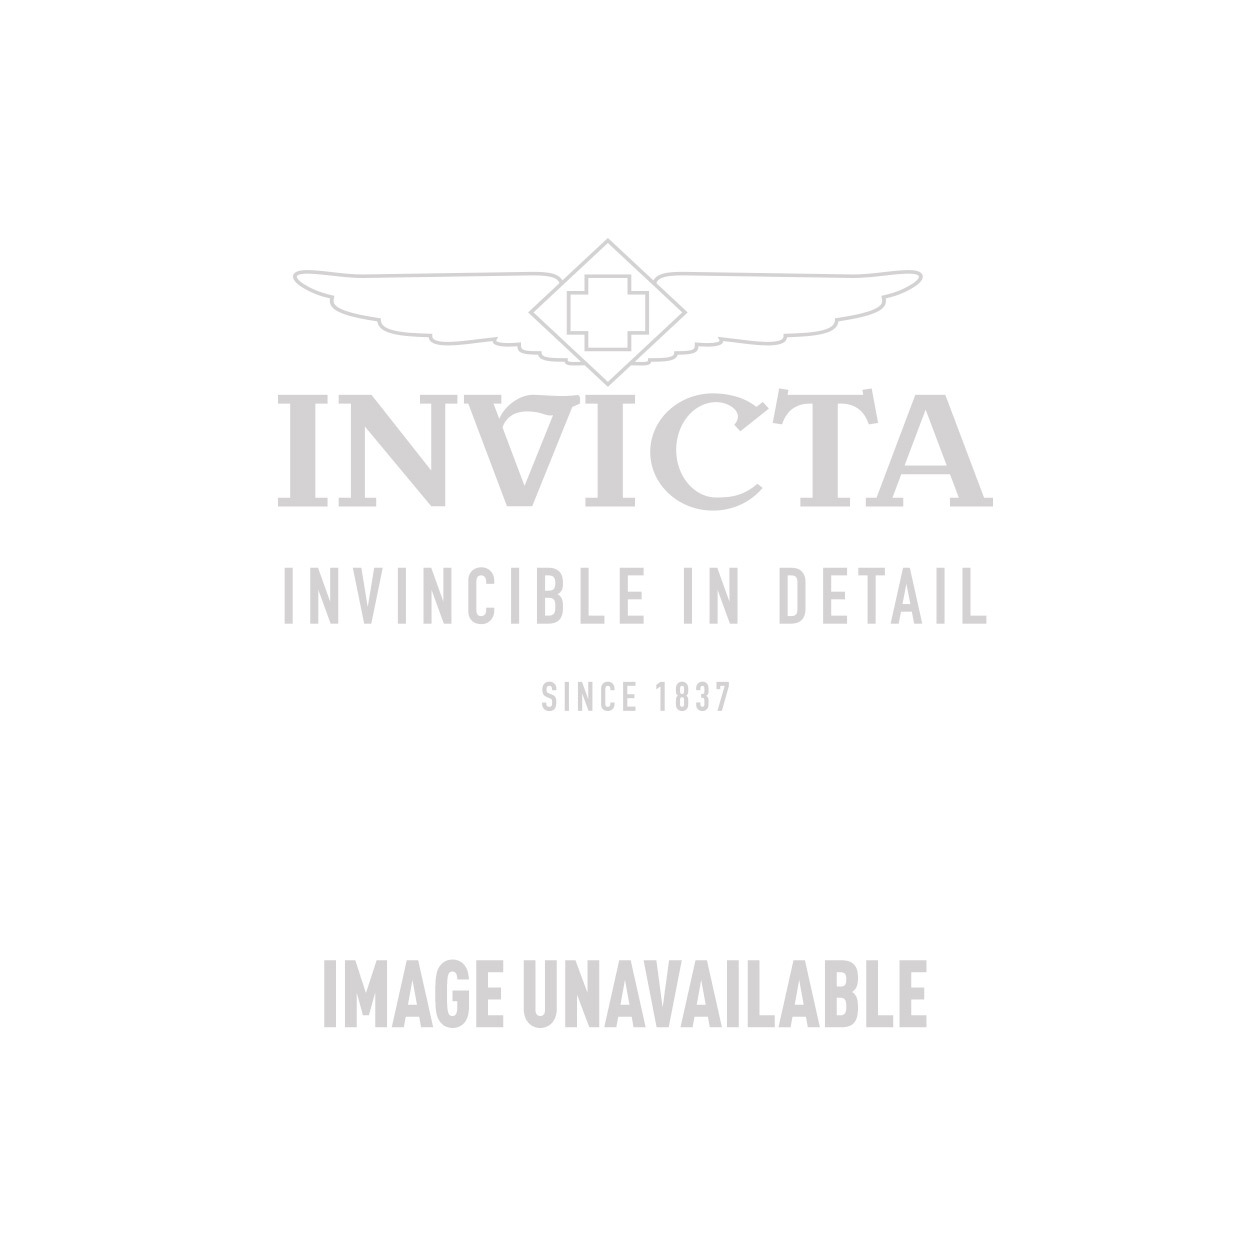 Invicta Excursion Swiss Made Quartz Watch - Stainless Steel case Stainless Steel band - Model 90052